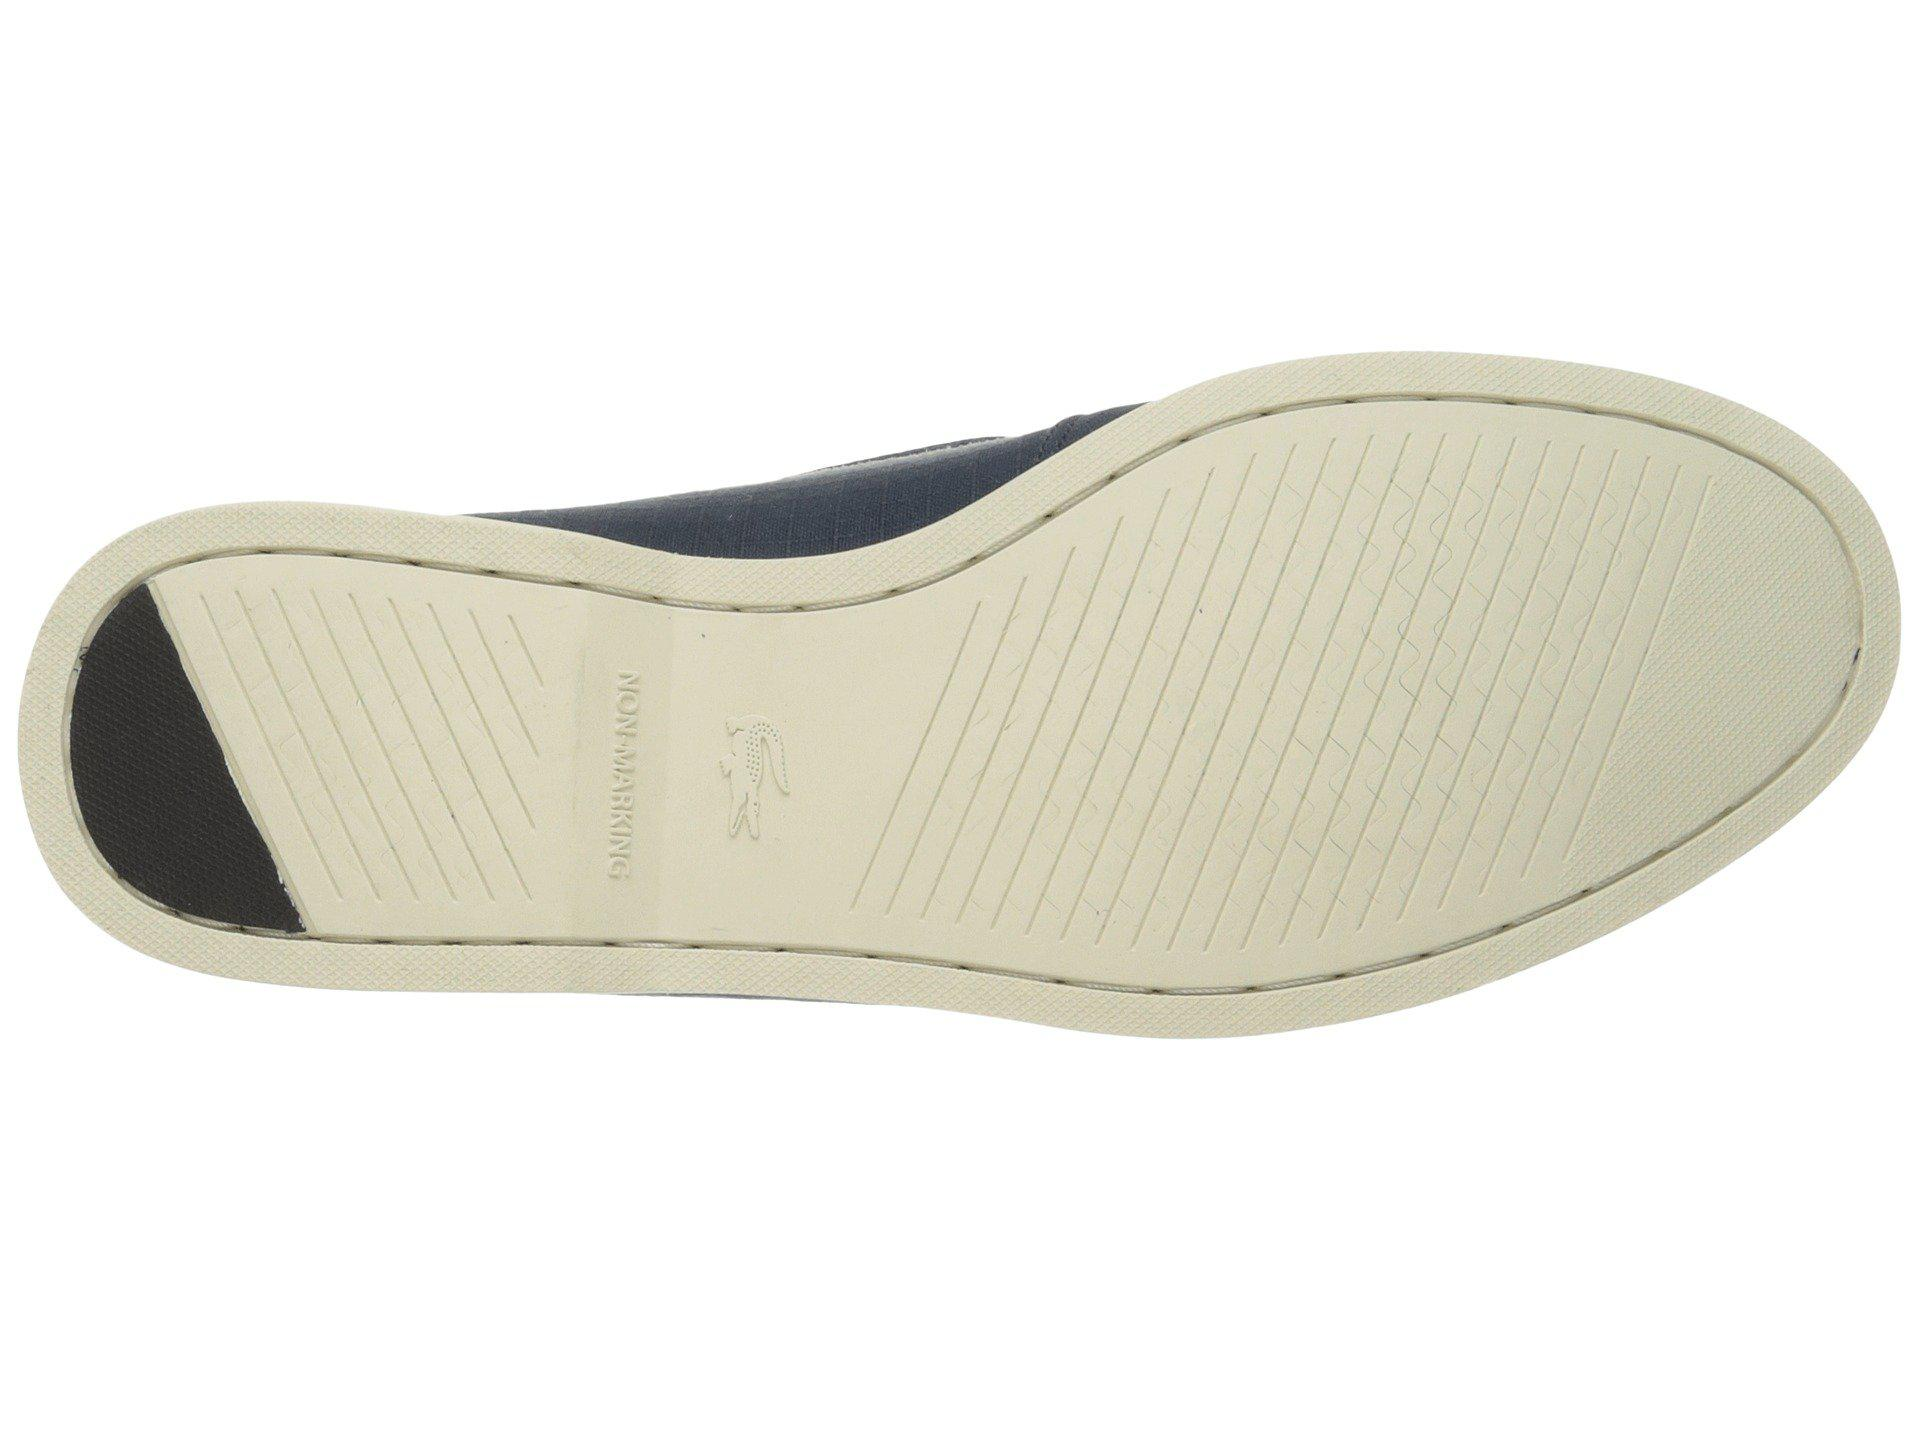 06127514d7fd8 Lyst - Lacoste Navire Casual 217 1 in Blue for Men